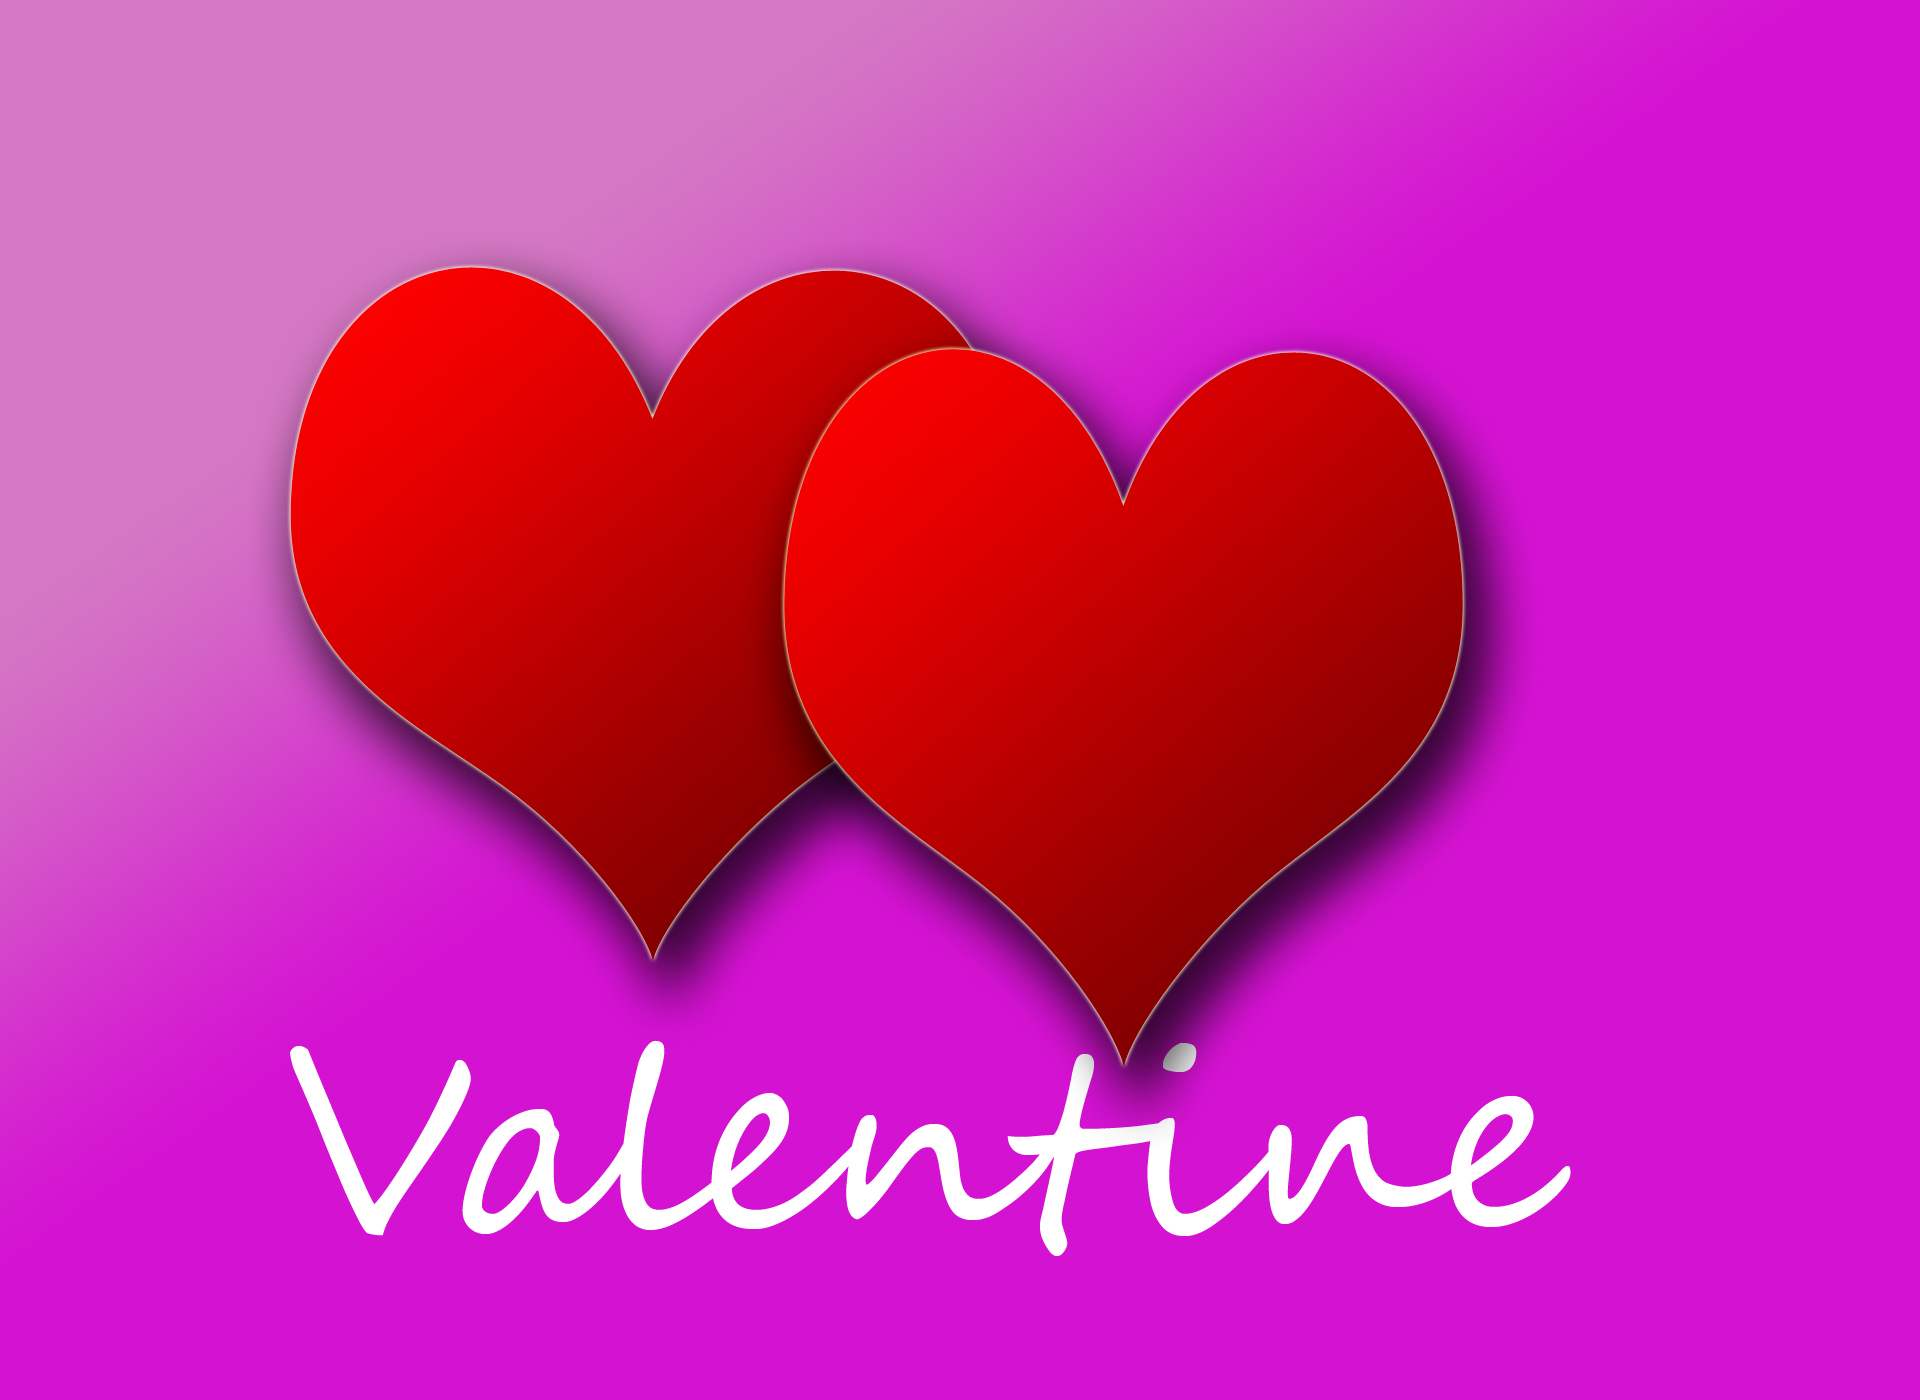 Free valentine wallpaper 20789 hd wallpapers background hdesktops